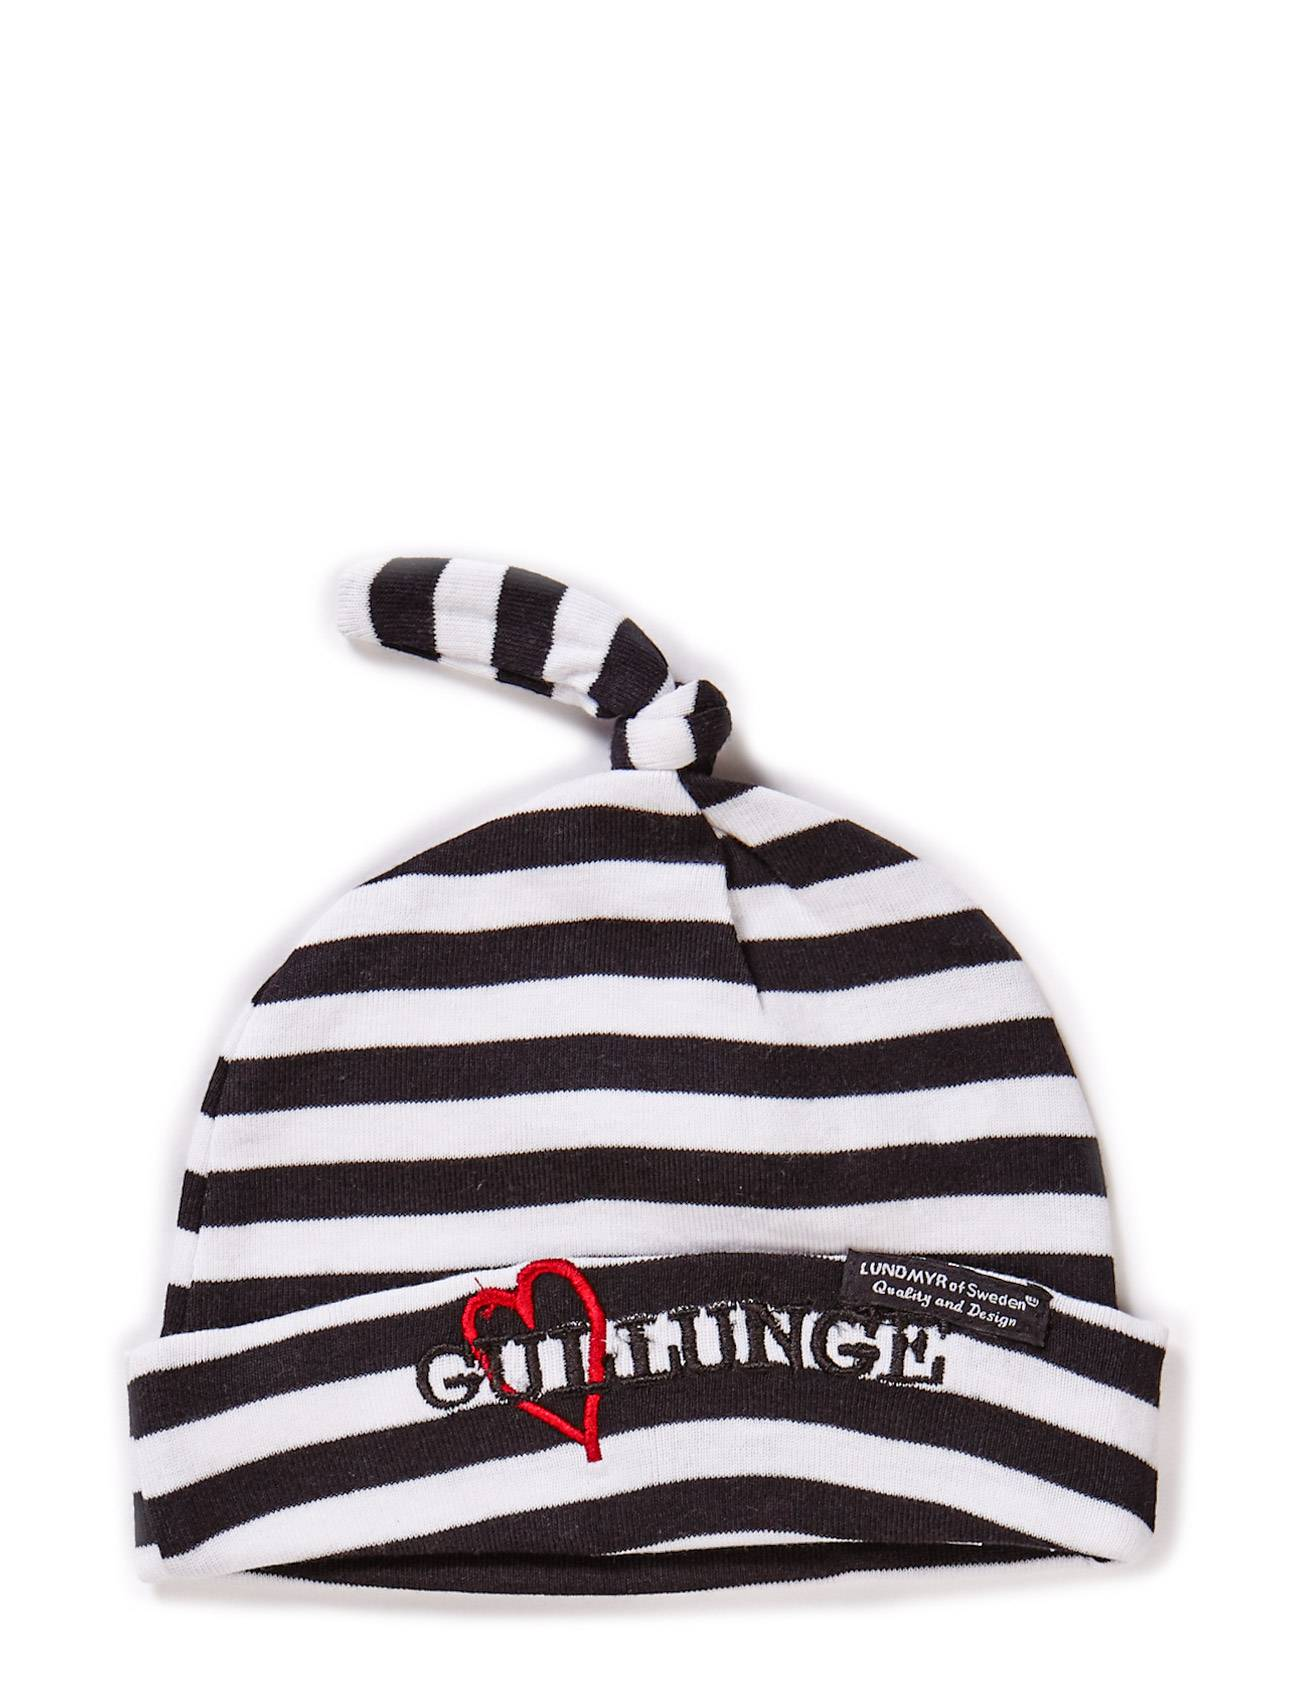 "Lundmyr Cap, Striped, Ã""Lskling"